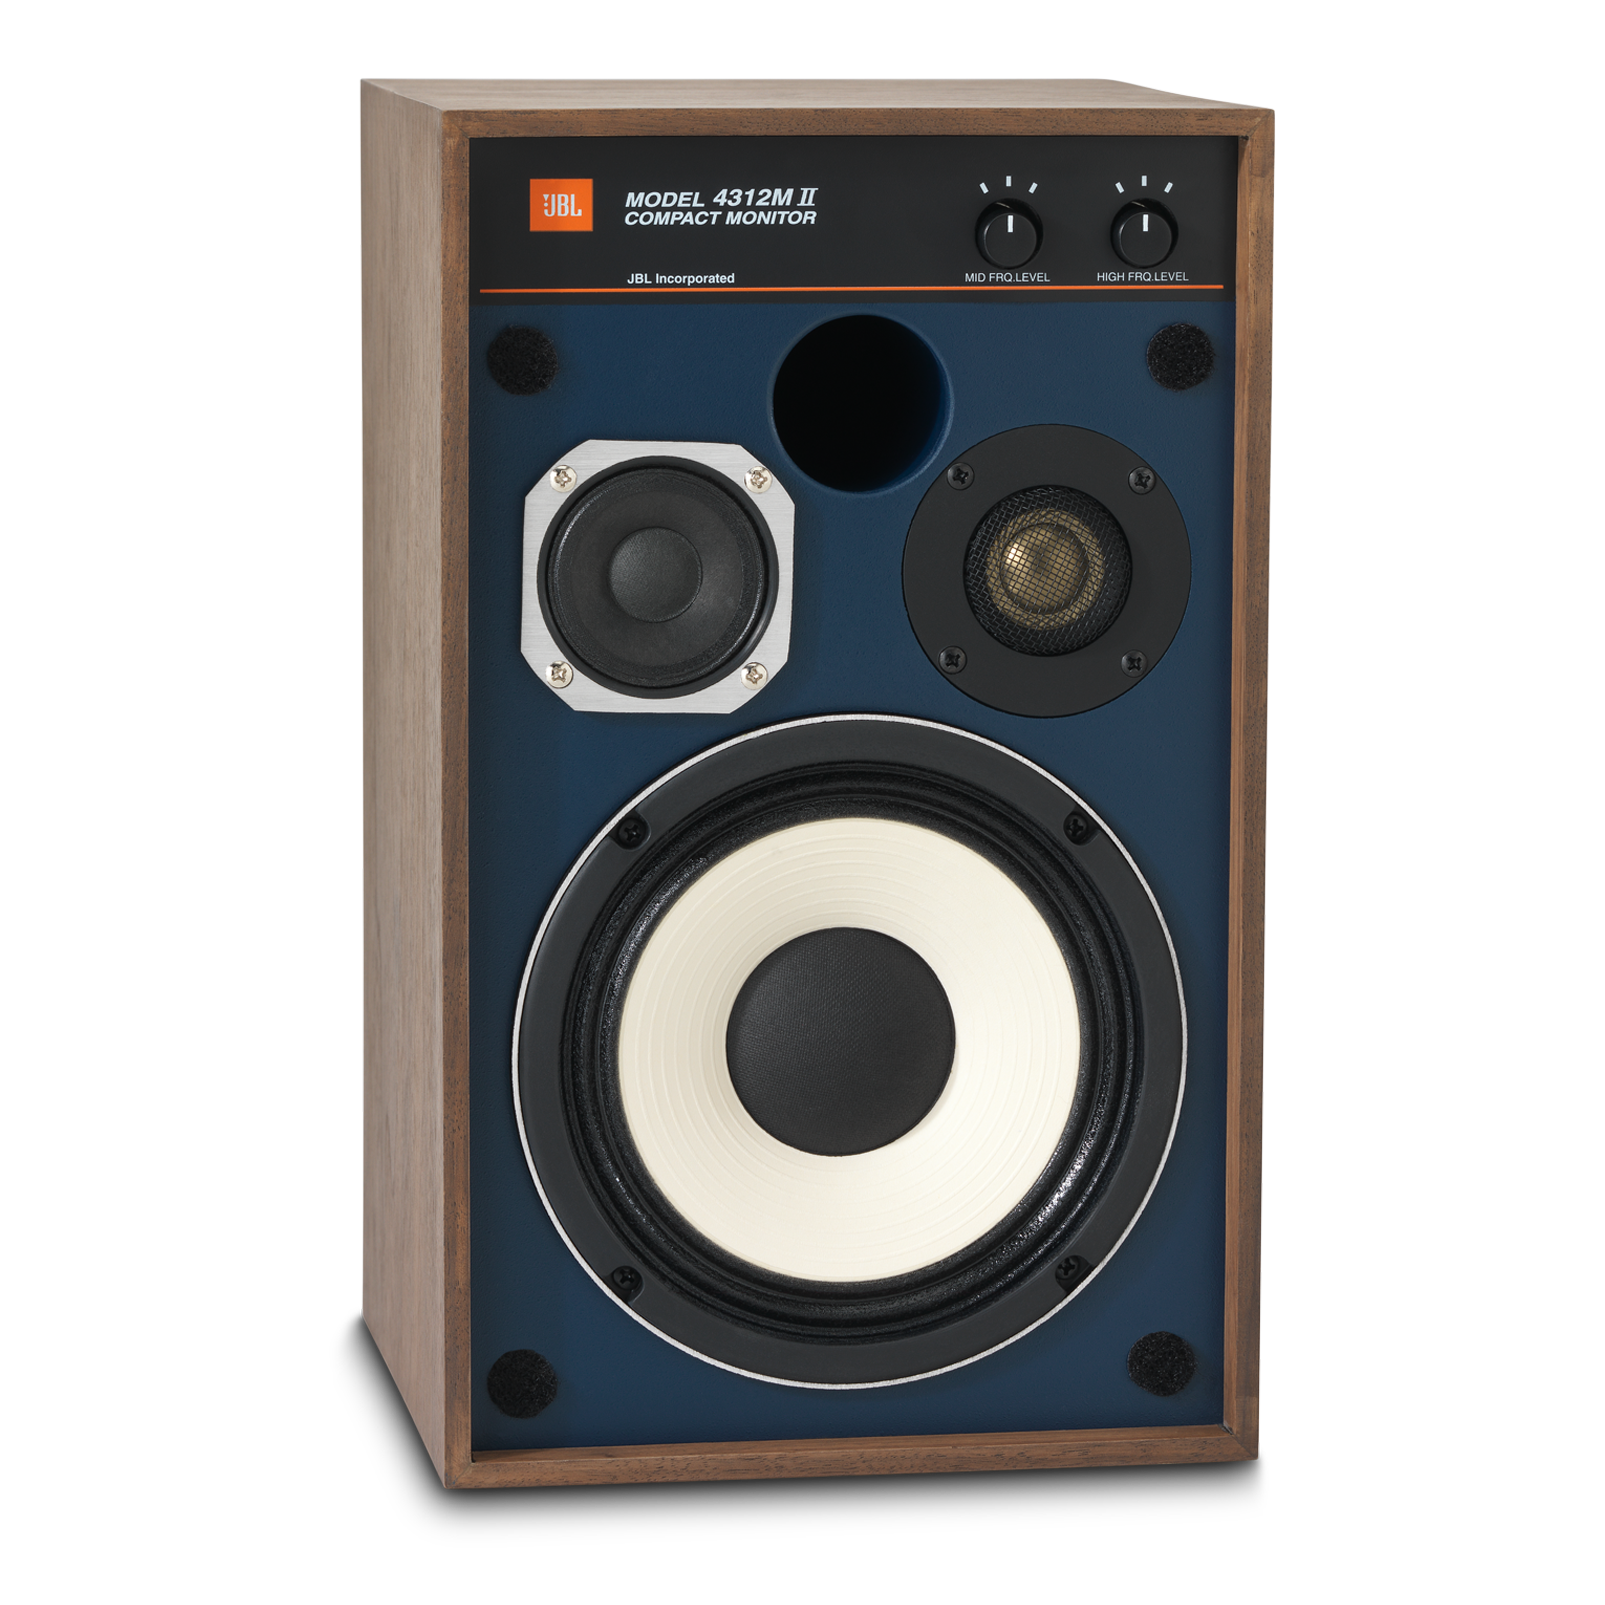 "4312MII - Brown - 5.25"" 3-way Studio Monitor Loudspeaker - Detailshot 1"